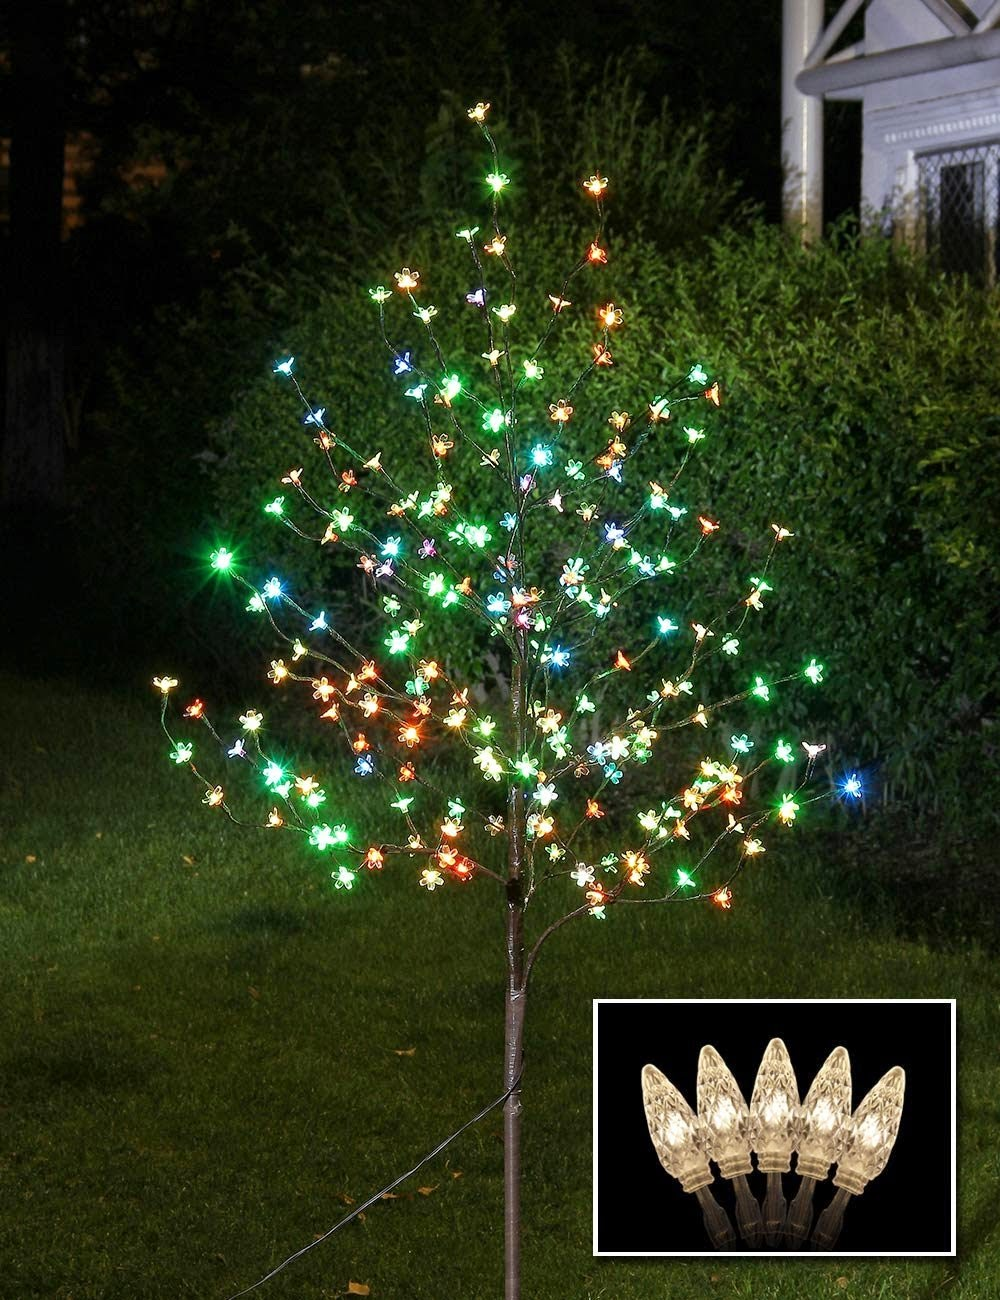 Lightshare: Save More on Shining Christmas Light Trees From ...